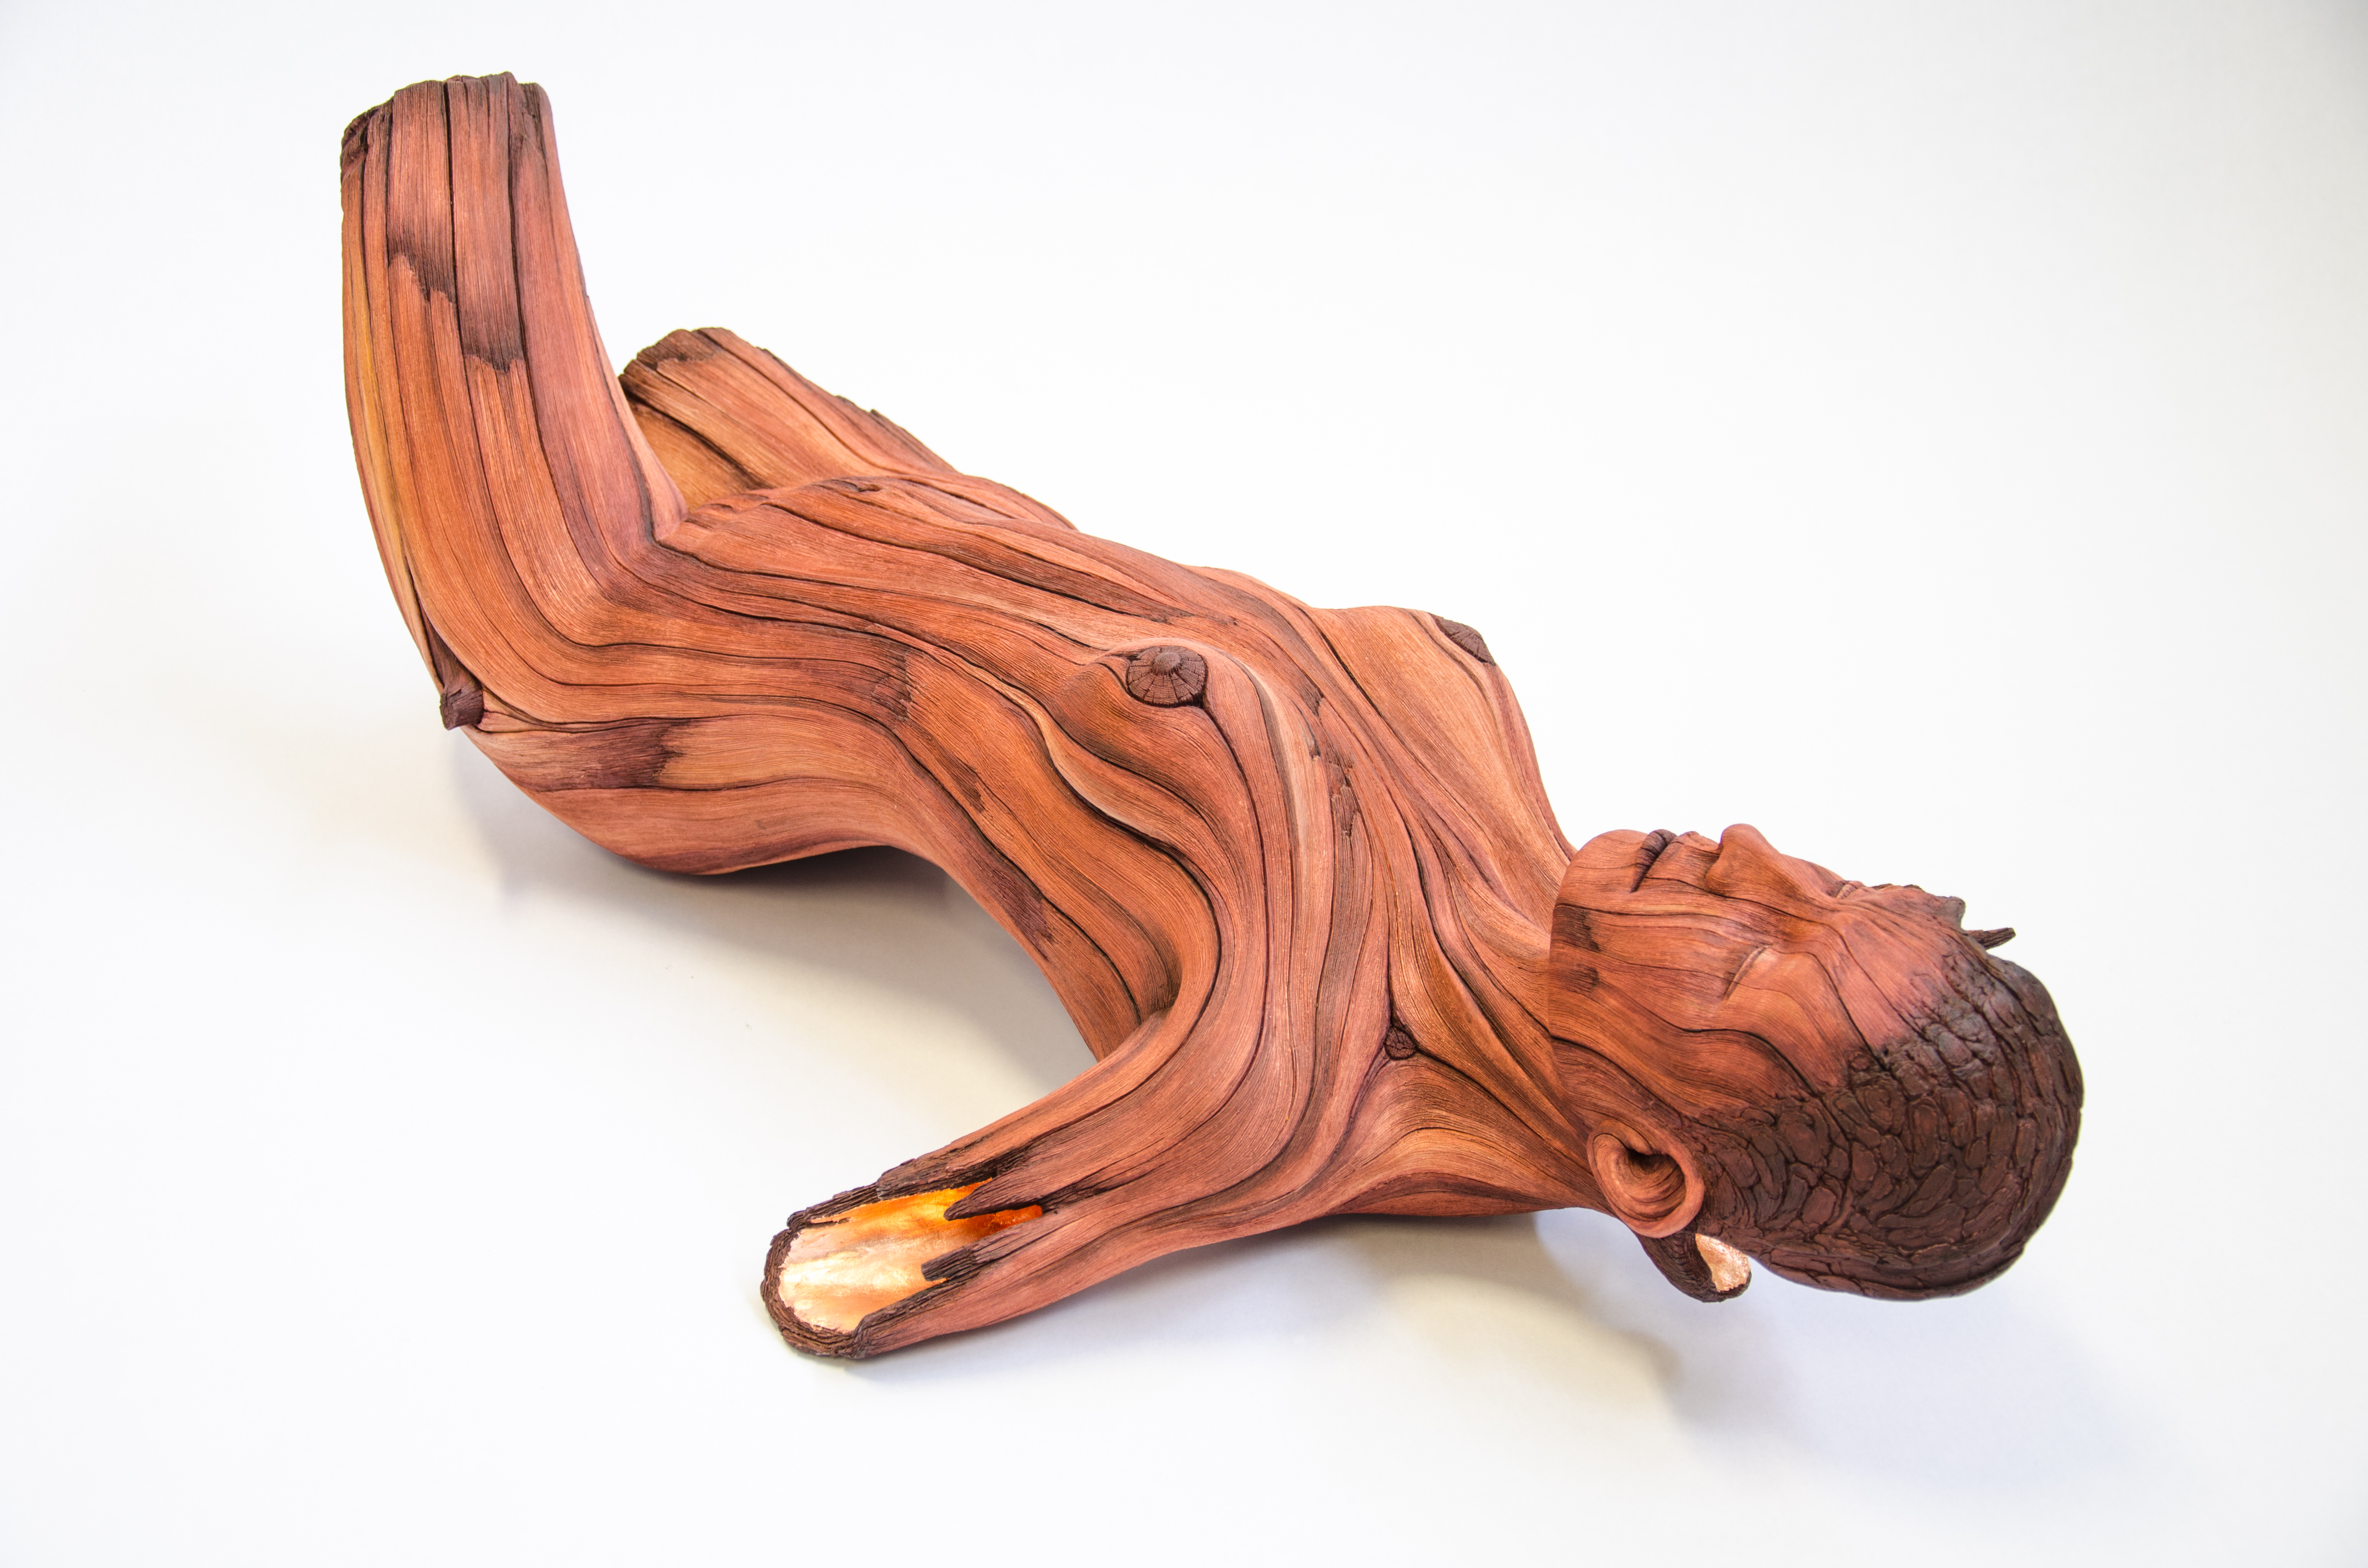 Habatat Galleries Figurative Group Show